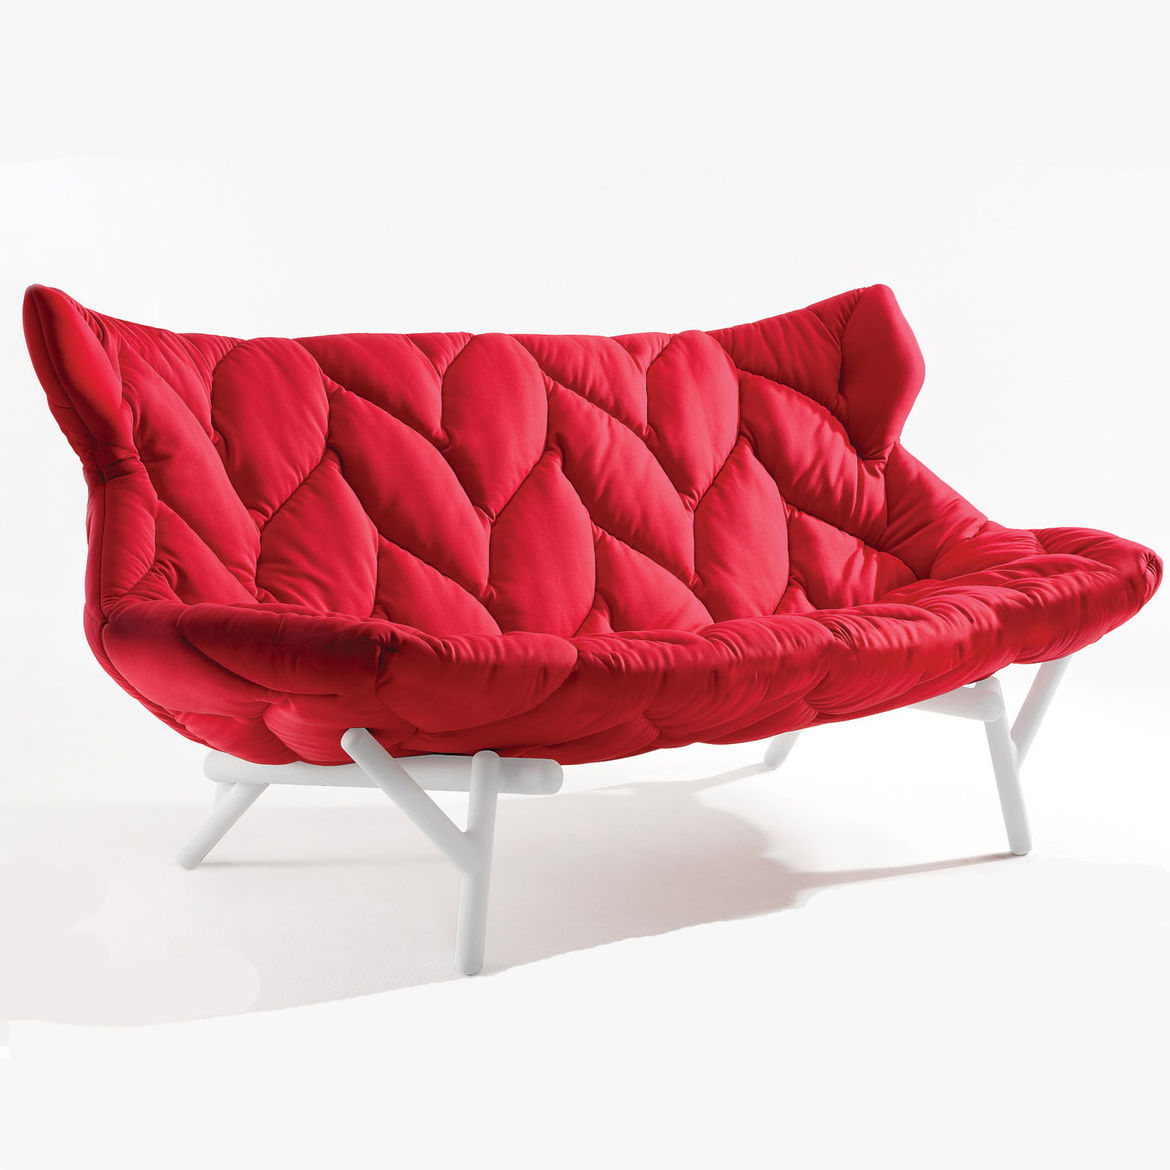 The Foliage Sofa by Patricia Urquiola for Kartell